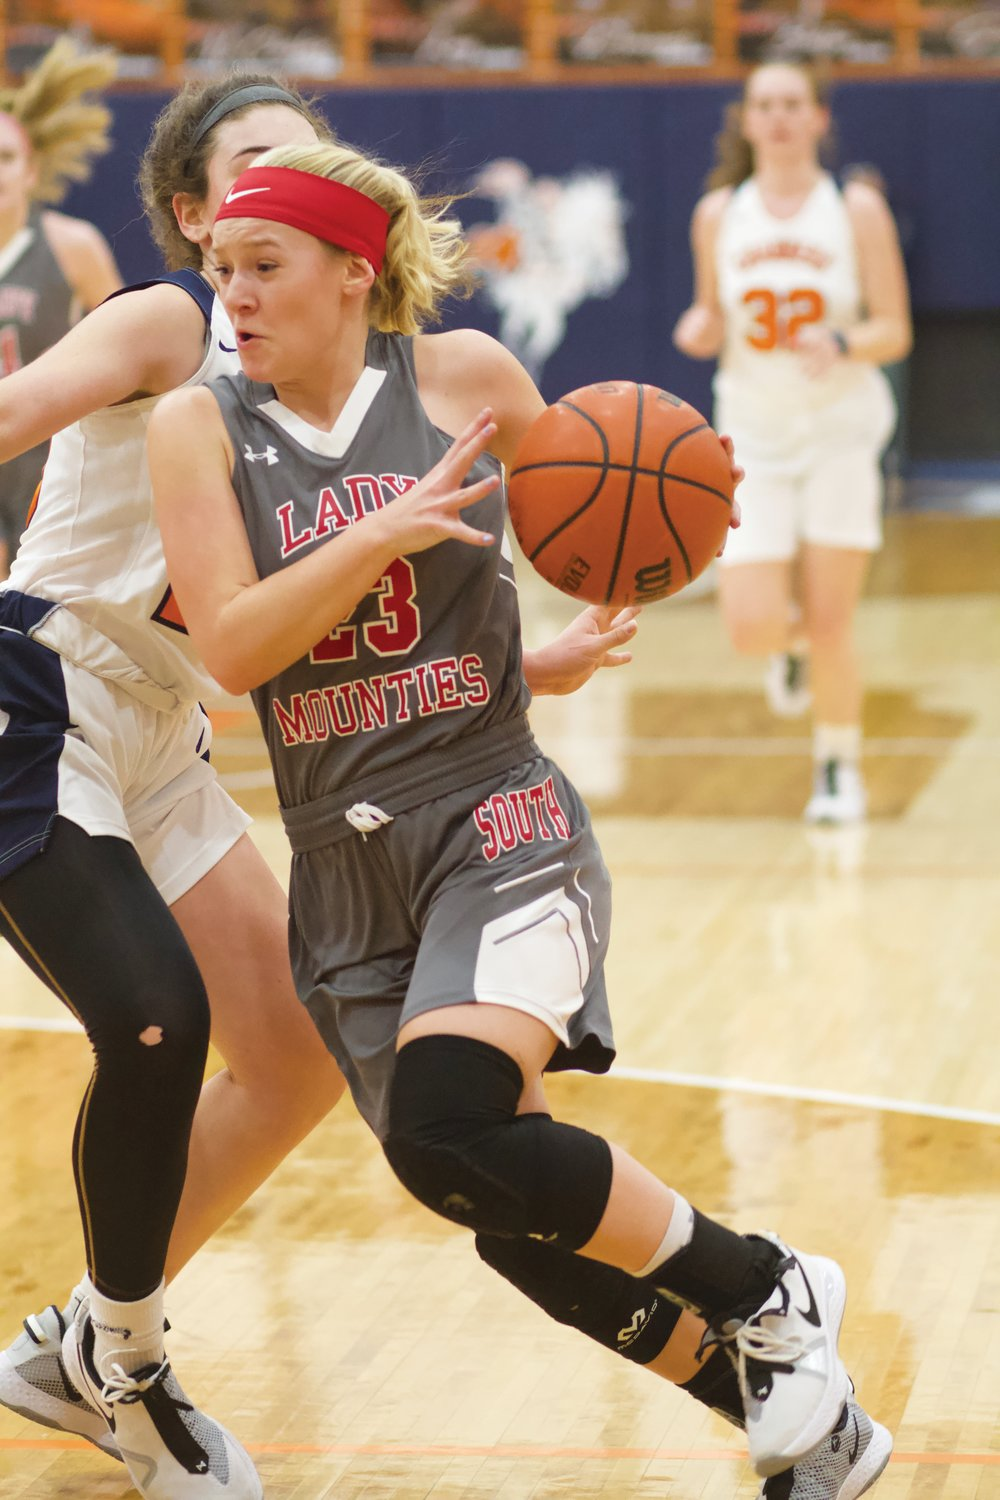 Southmont's Addison Charles looks to score in the Mounties' 55-29 win over the Chargers on Thursday.